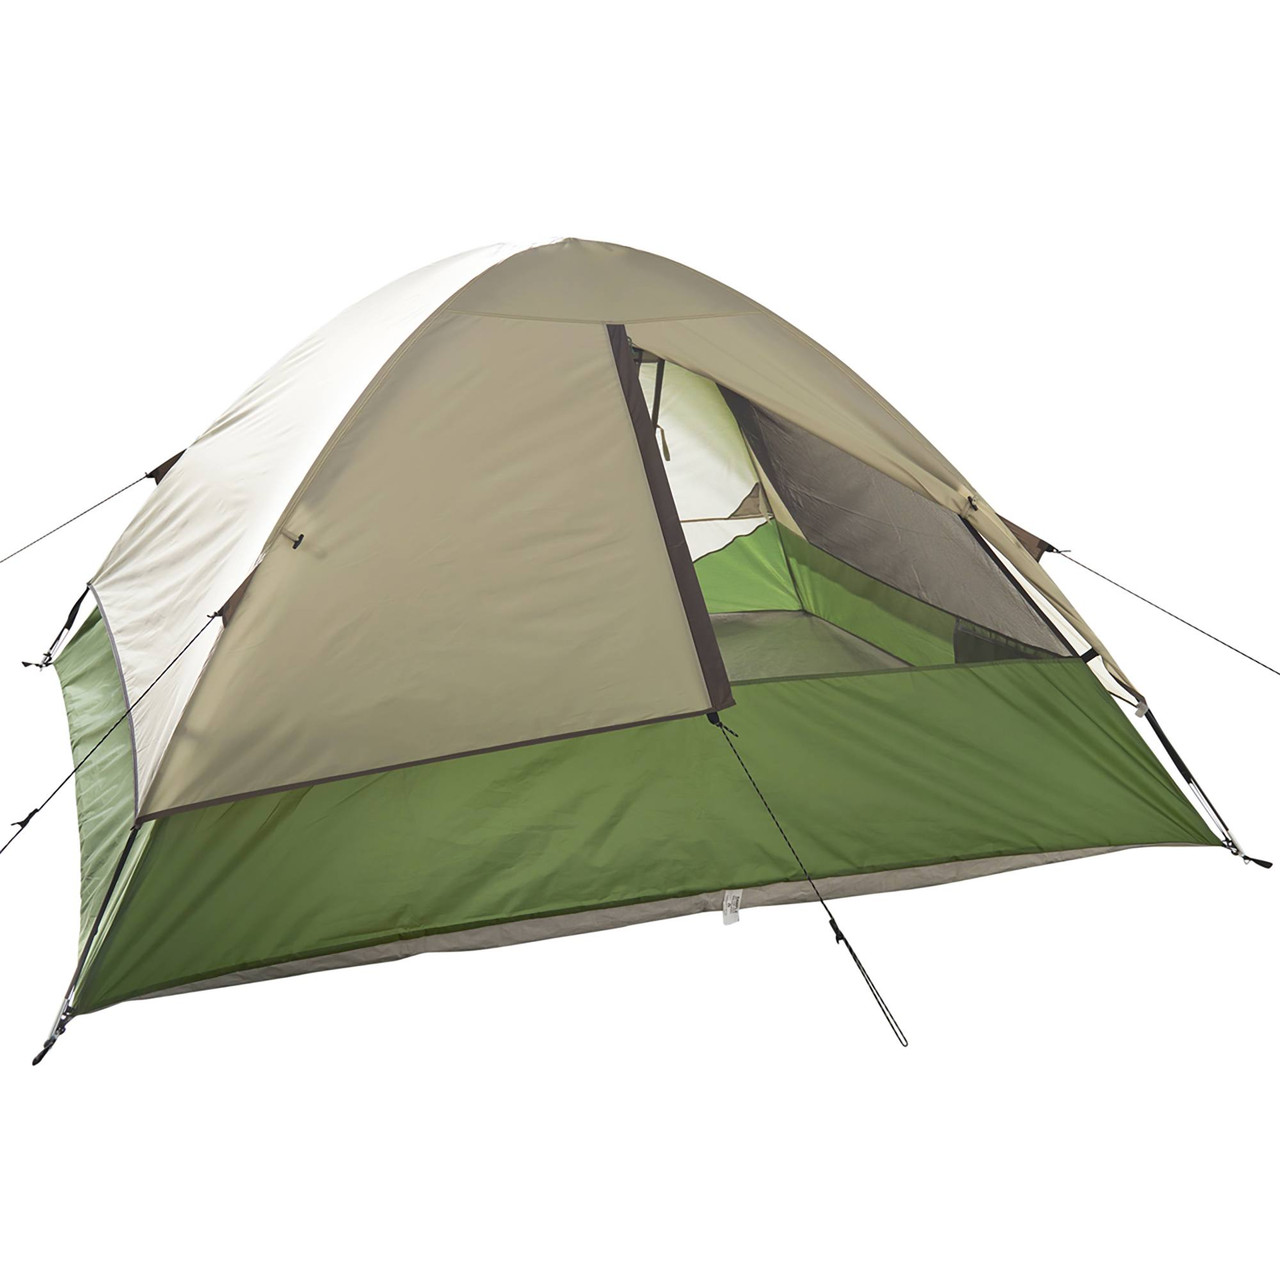 Wenzel Jack Pine 4 Person Dome Tent, green/white, rear view, with window partially closed